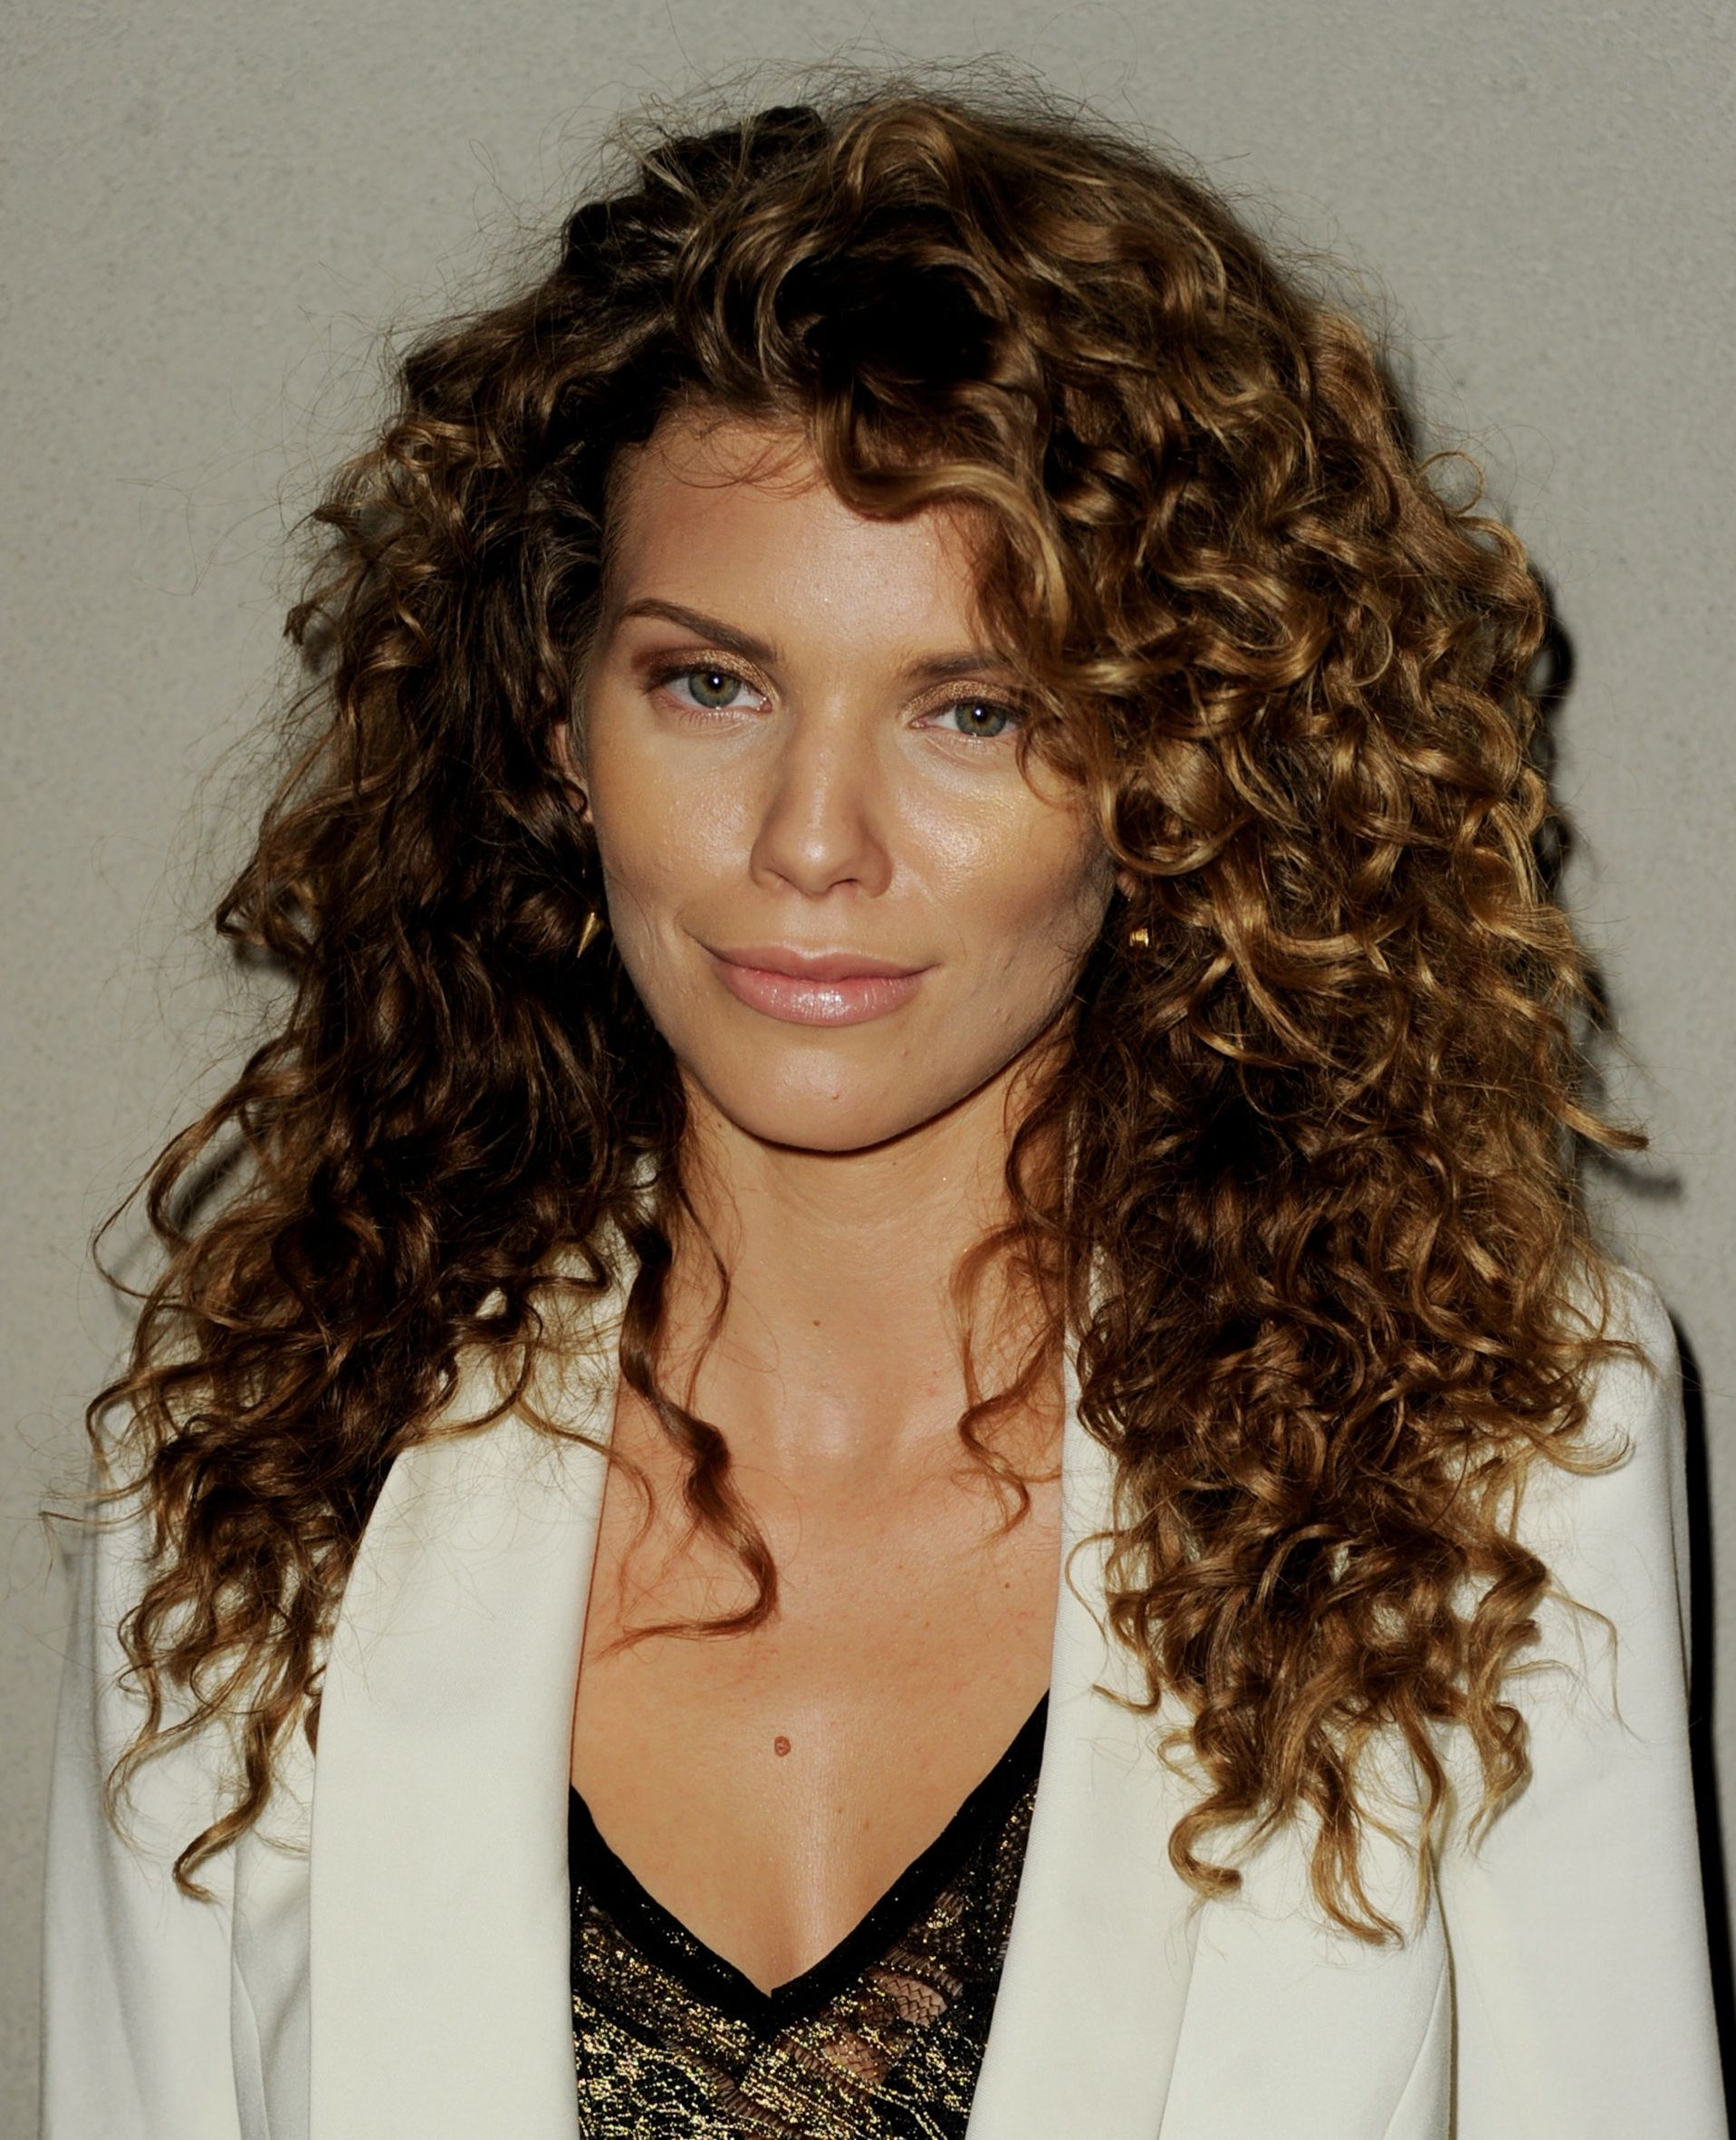 hairstyles for naturally curly hair hur pinterest natural